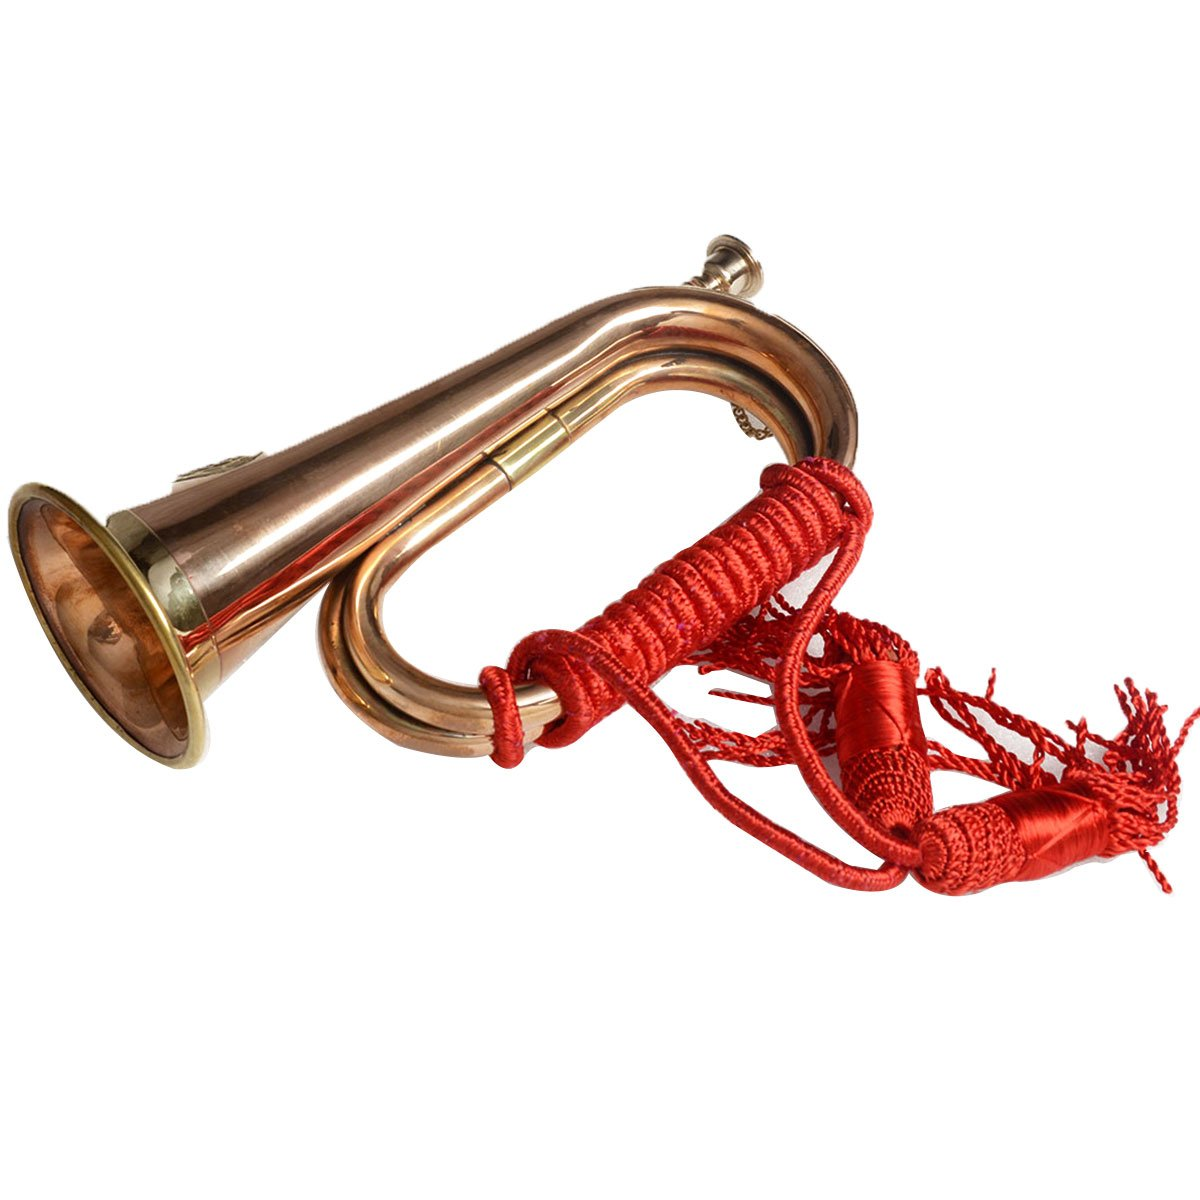 Ectoria EC12-018.CU9 CSA Real Copper Boy Scout Bugle Horn- Red Rope